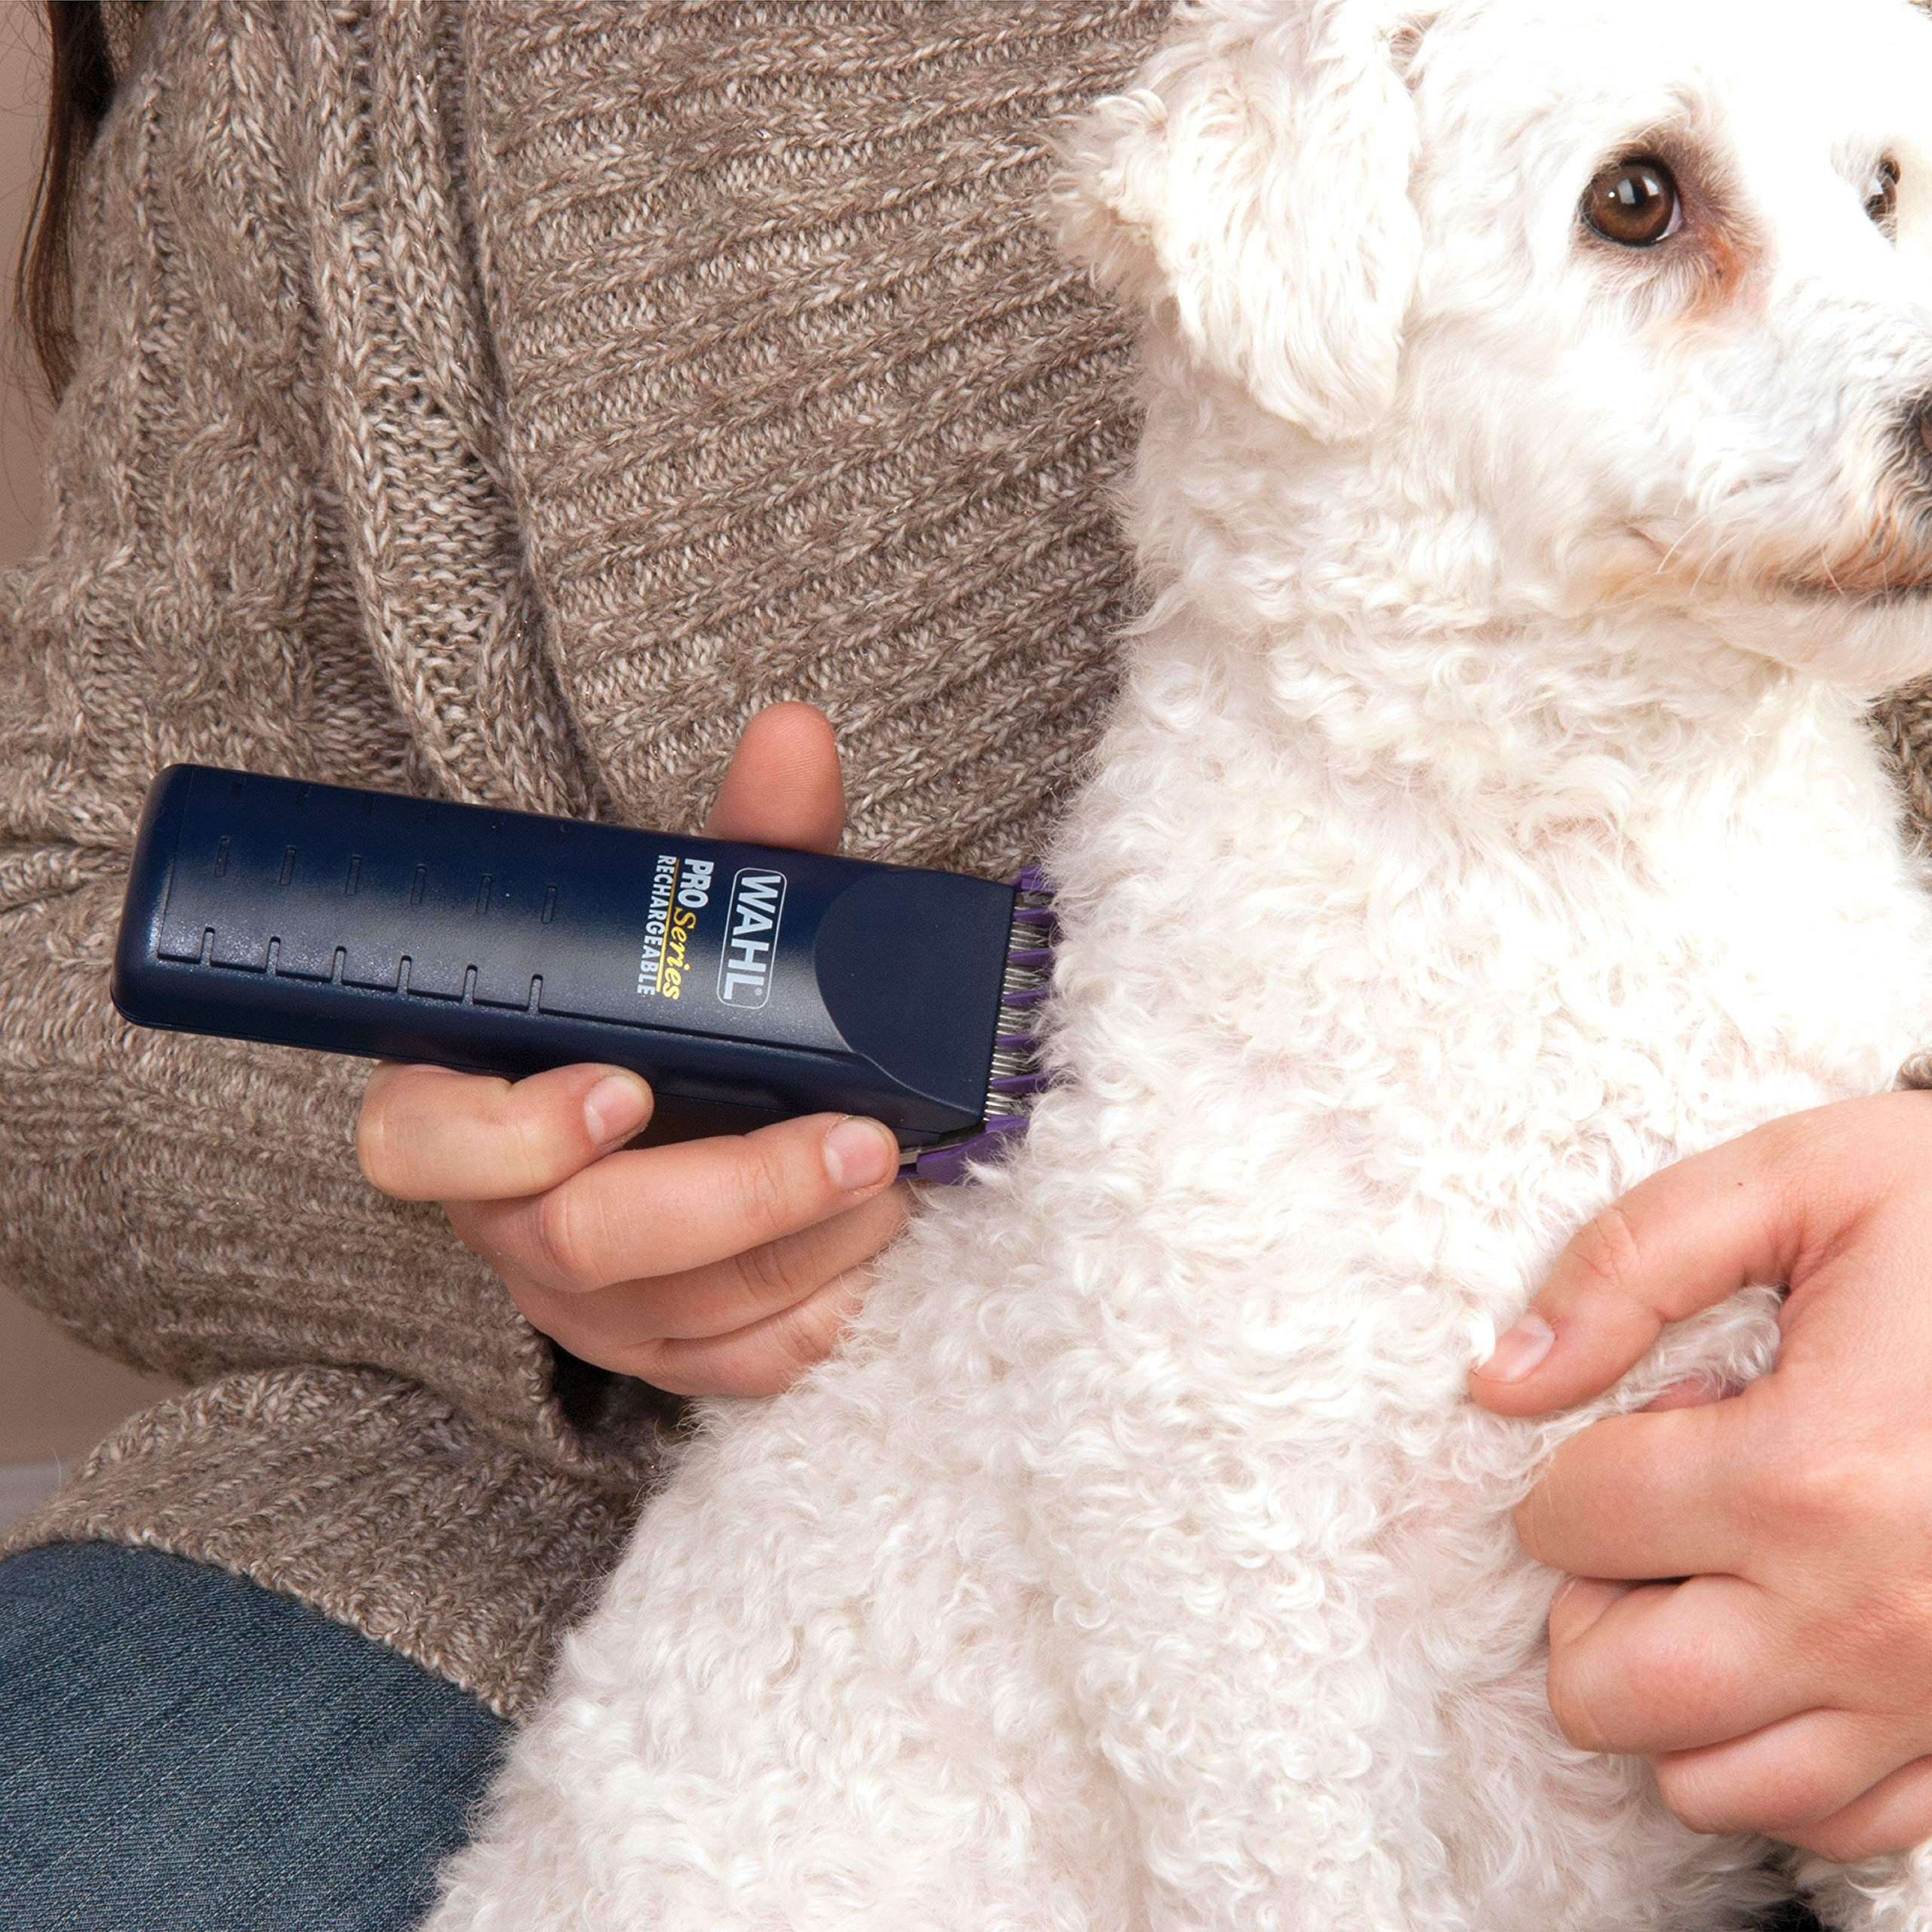 Wahl Home Pet Pro Series Complete Pet Clipper Kit You Can Get More Details By Clicking On The Image It Is An In 2020 Dog Accessories Large Dog Clippers Pet Grooming